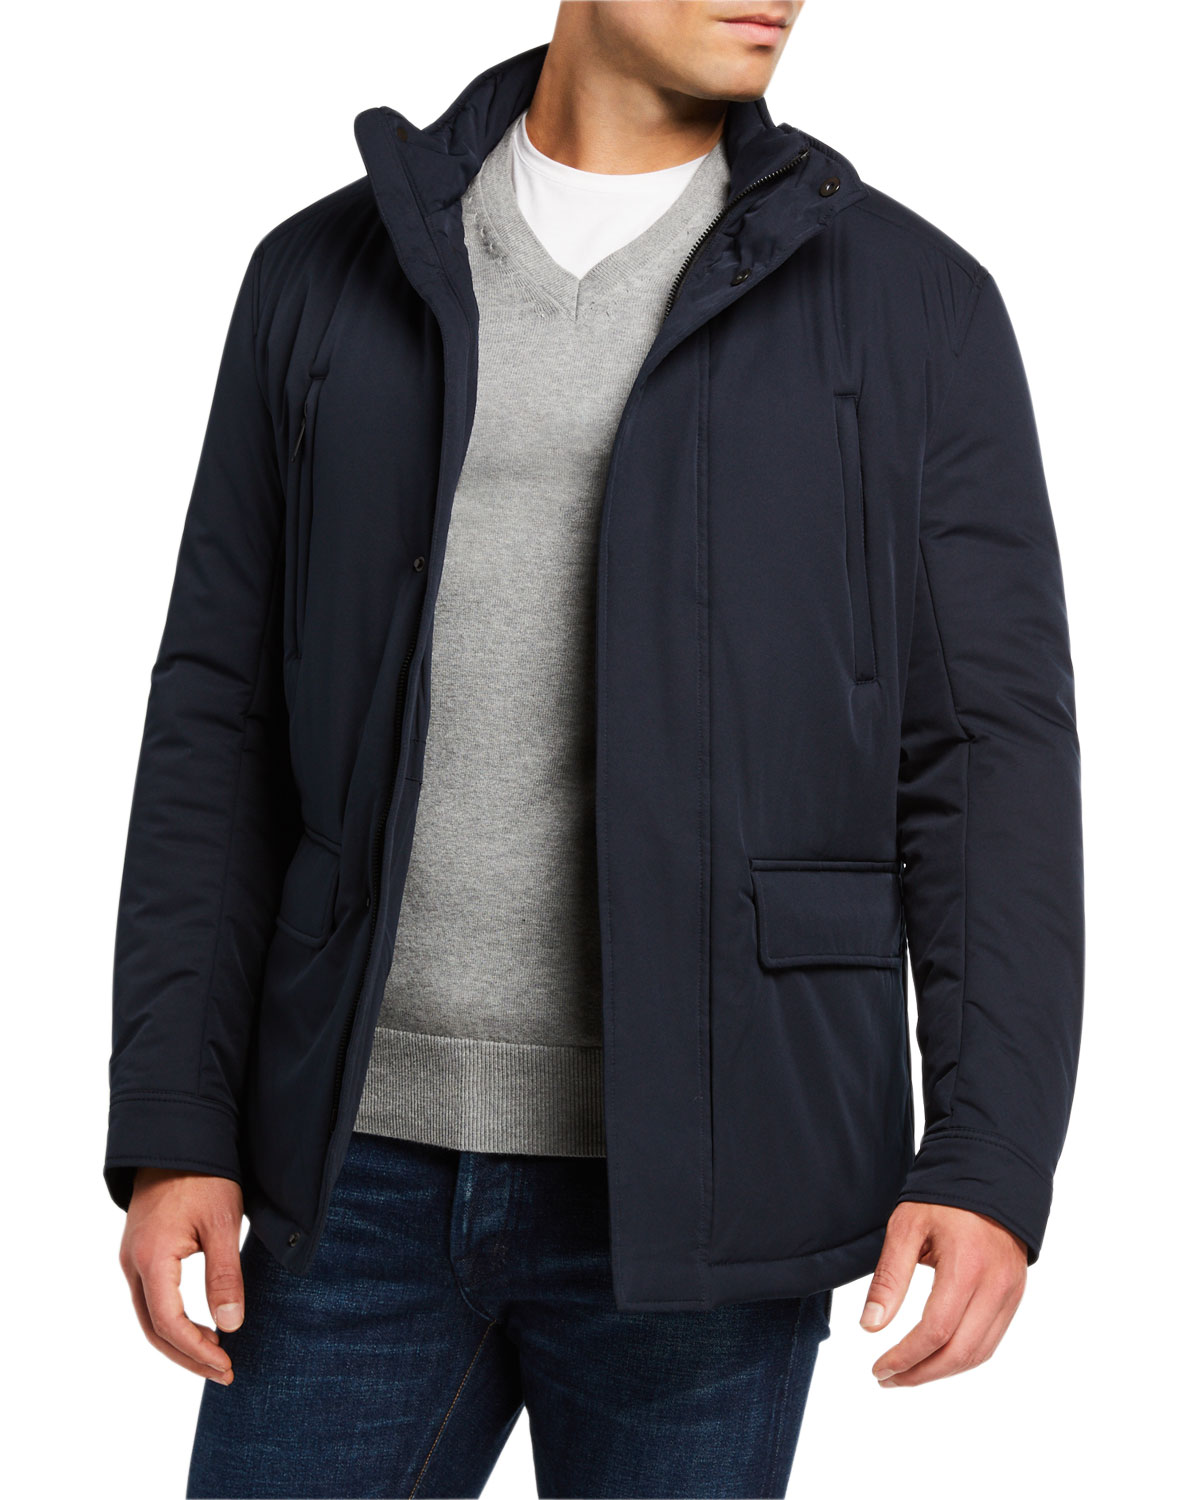 Emporio Armani Men's Front-Pocket Weather-Resistant Jacket